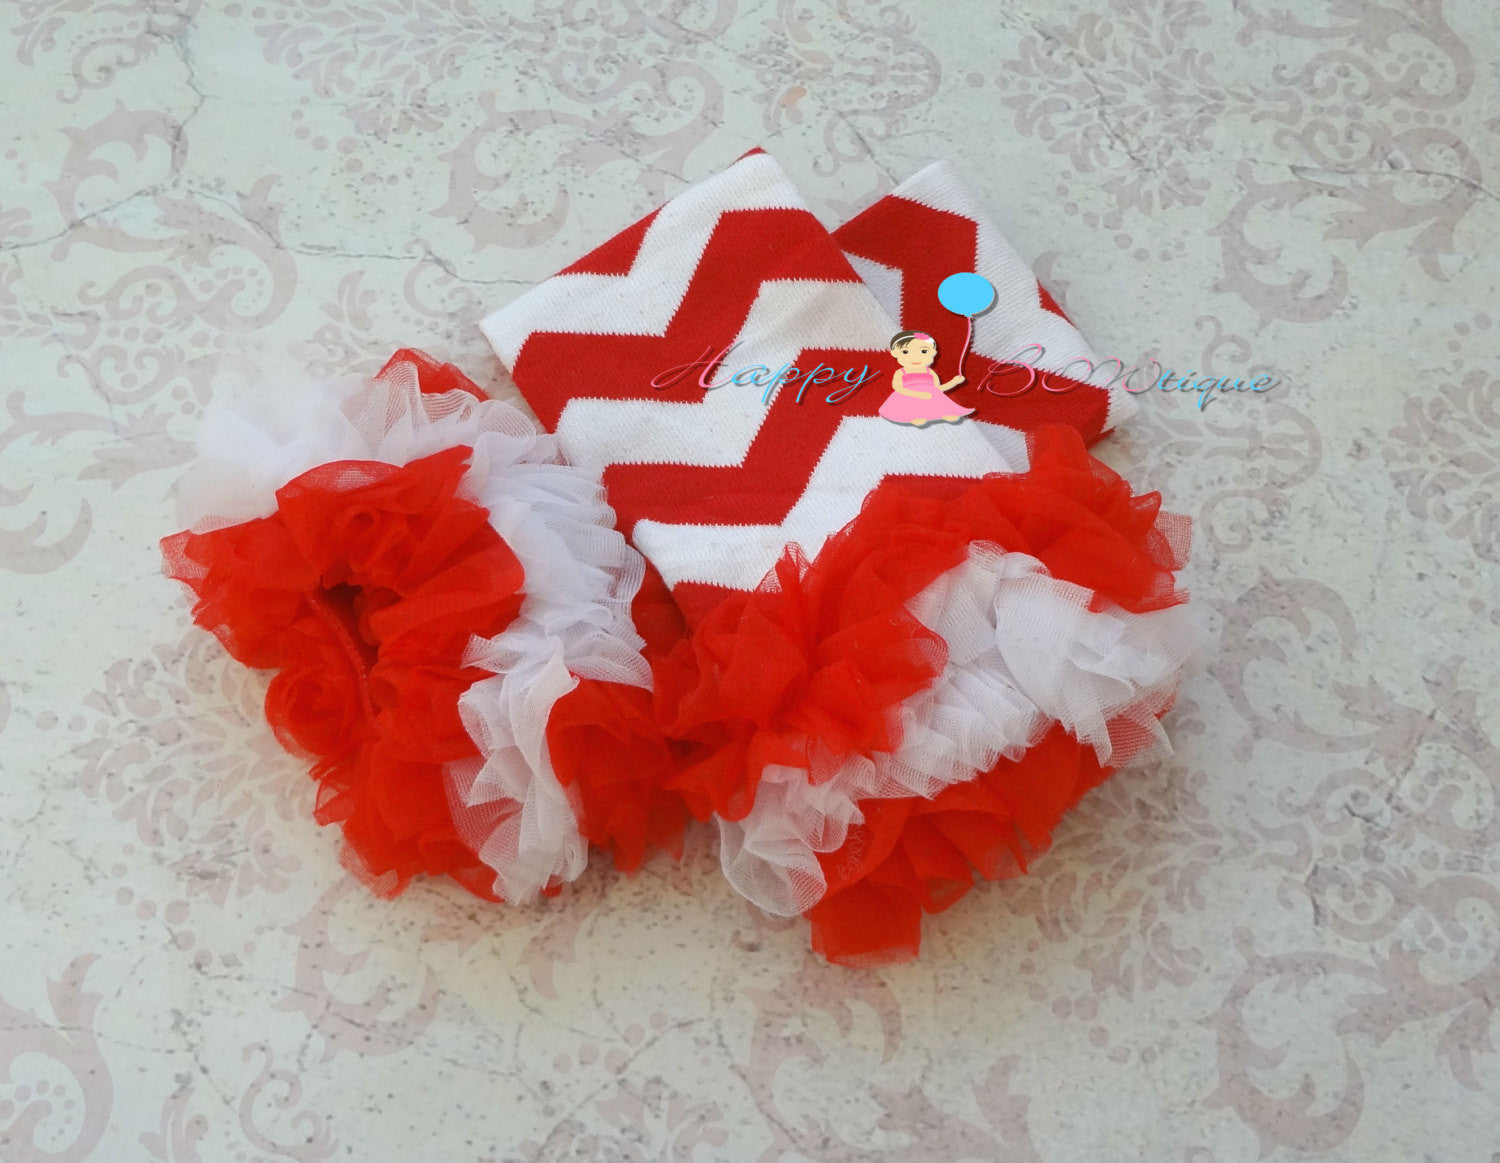 Red chevron ruffles Legwarmers - Happy BOWtique - children's clothing, Baby Girl clothing